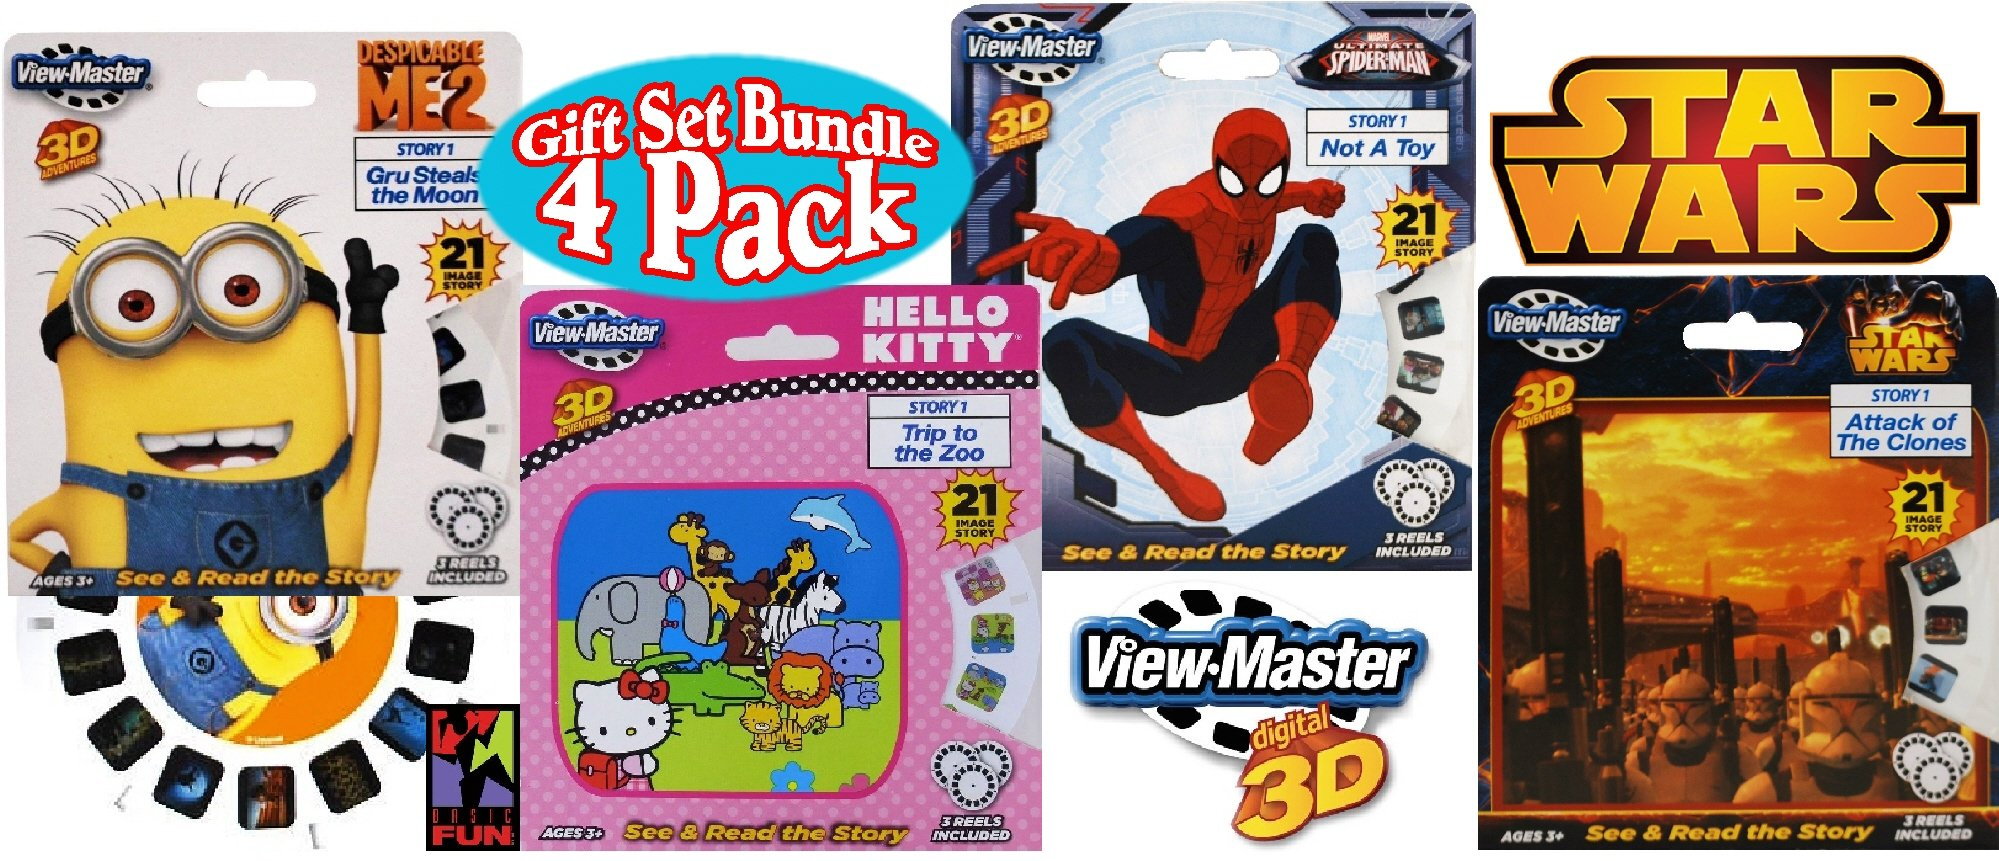 "Basic Fun View-Master Classic 3D Adventures 3 Reel Refills ""Despicable Me 2"" (Minions), ""Spider-Man"", ""Hello Kitty"" & ""Star Wars"" Gift Set Bundle - 4 Pack"